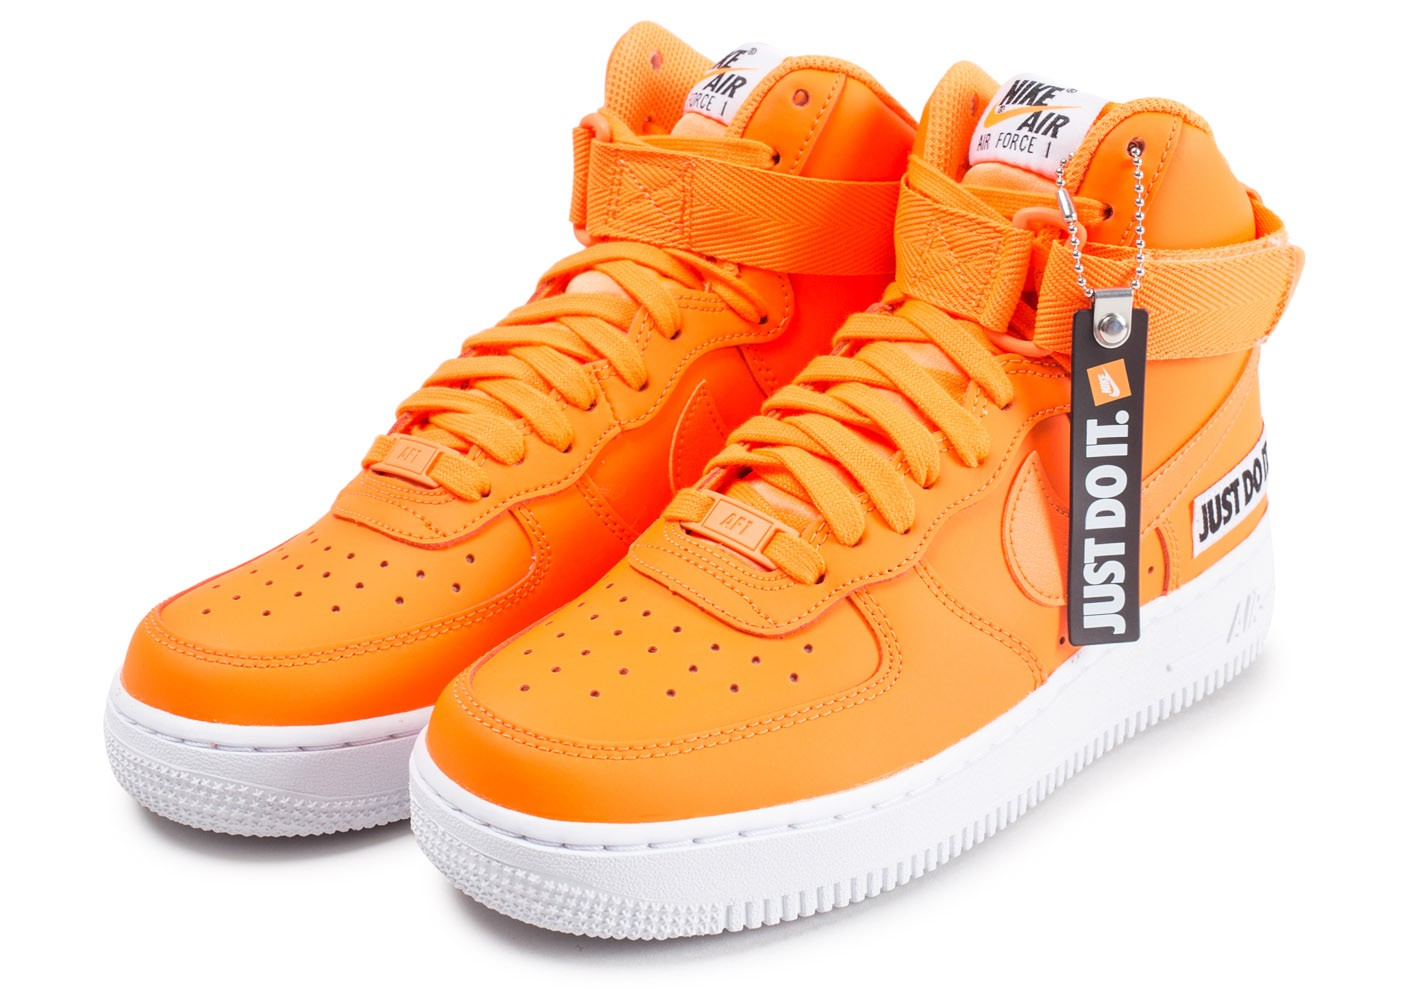 hot sale online 4ec38 bfd0b ... Chaussures Nike Air Force 1 High LX Leather JDI orange femme vue  intérieure ...